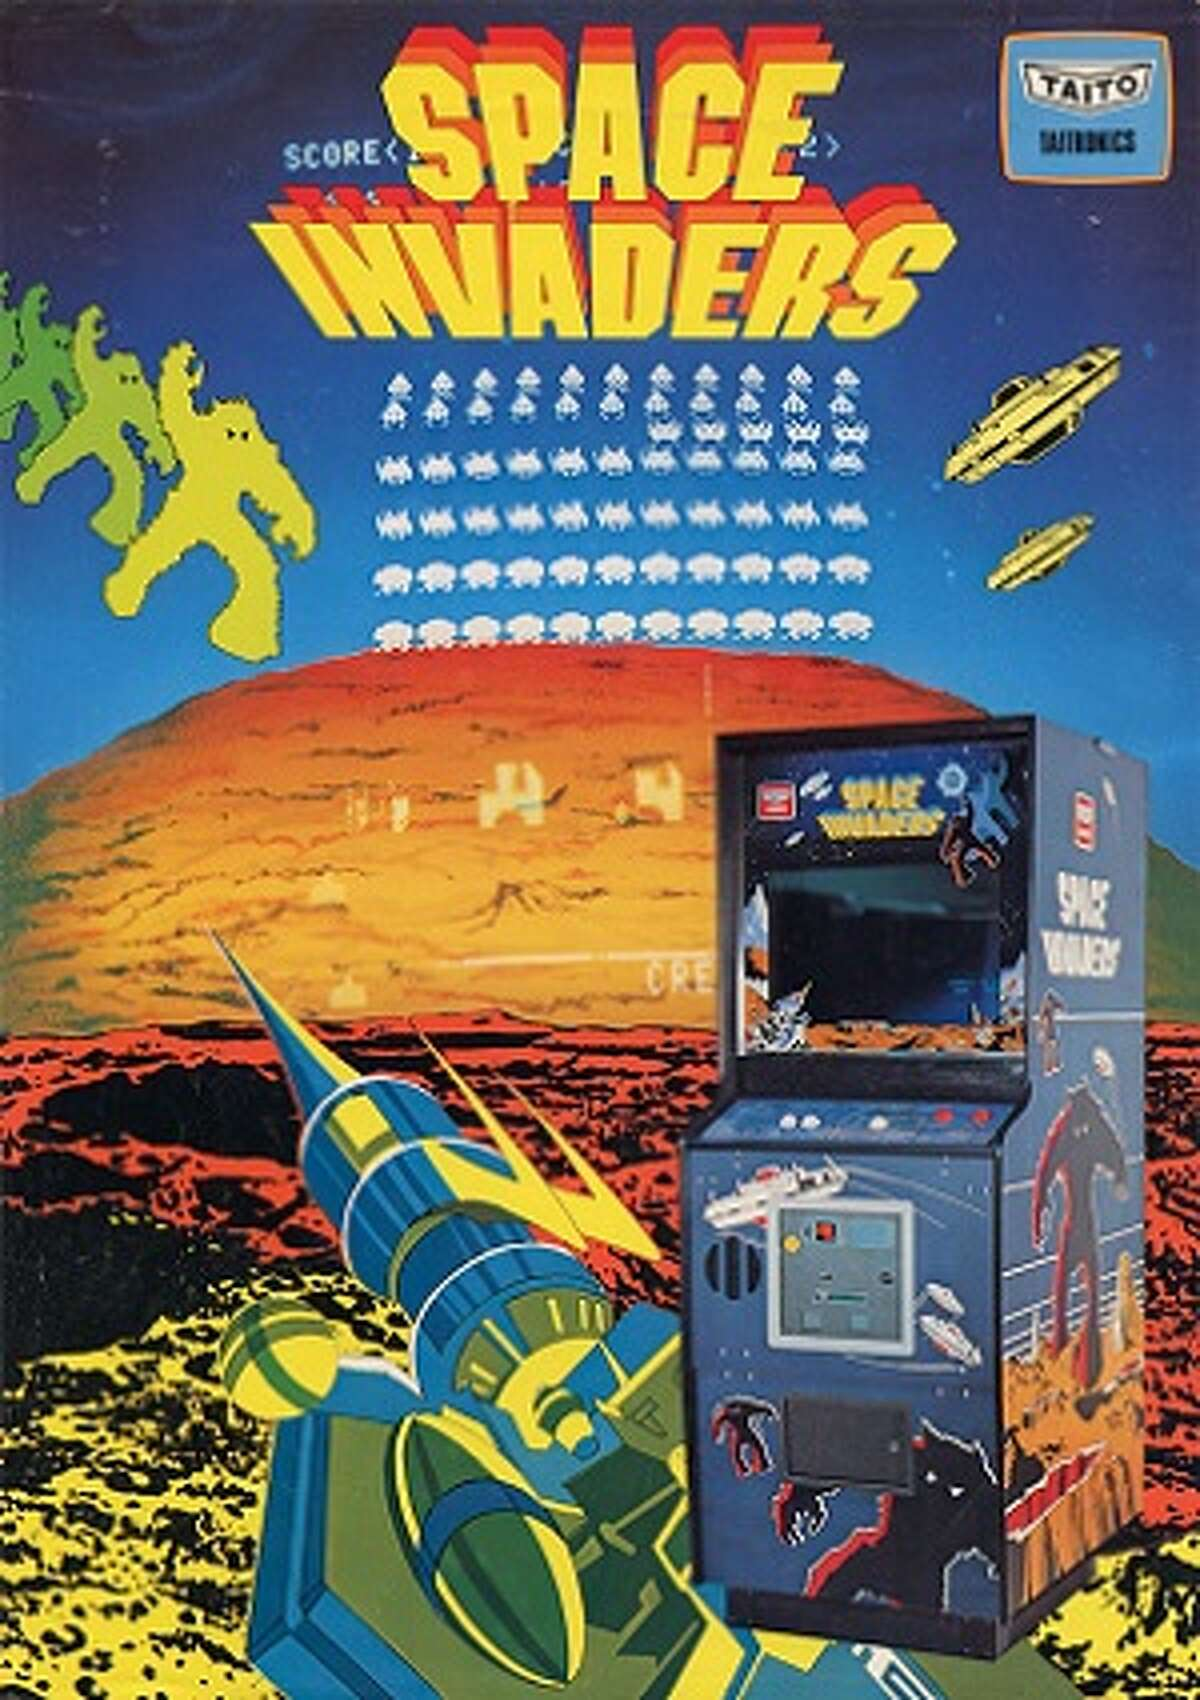 THE MOST POPULAR VIDEO GAME THE YEAR YOU WERE BORN 1977 - Space Invaders Atari 2600